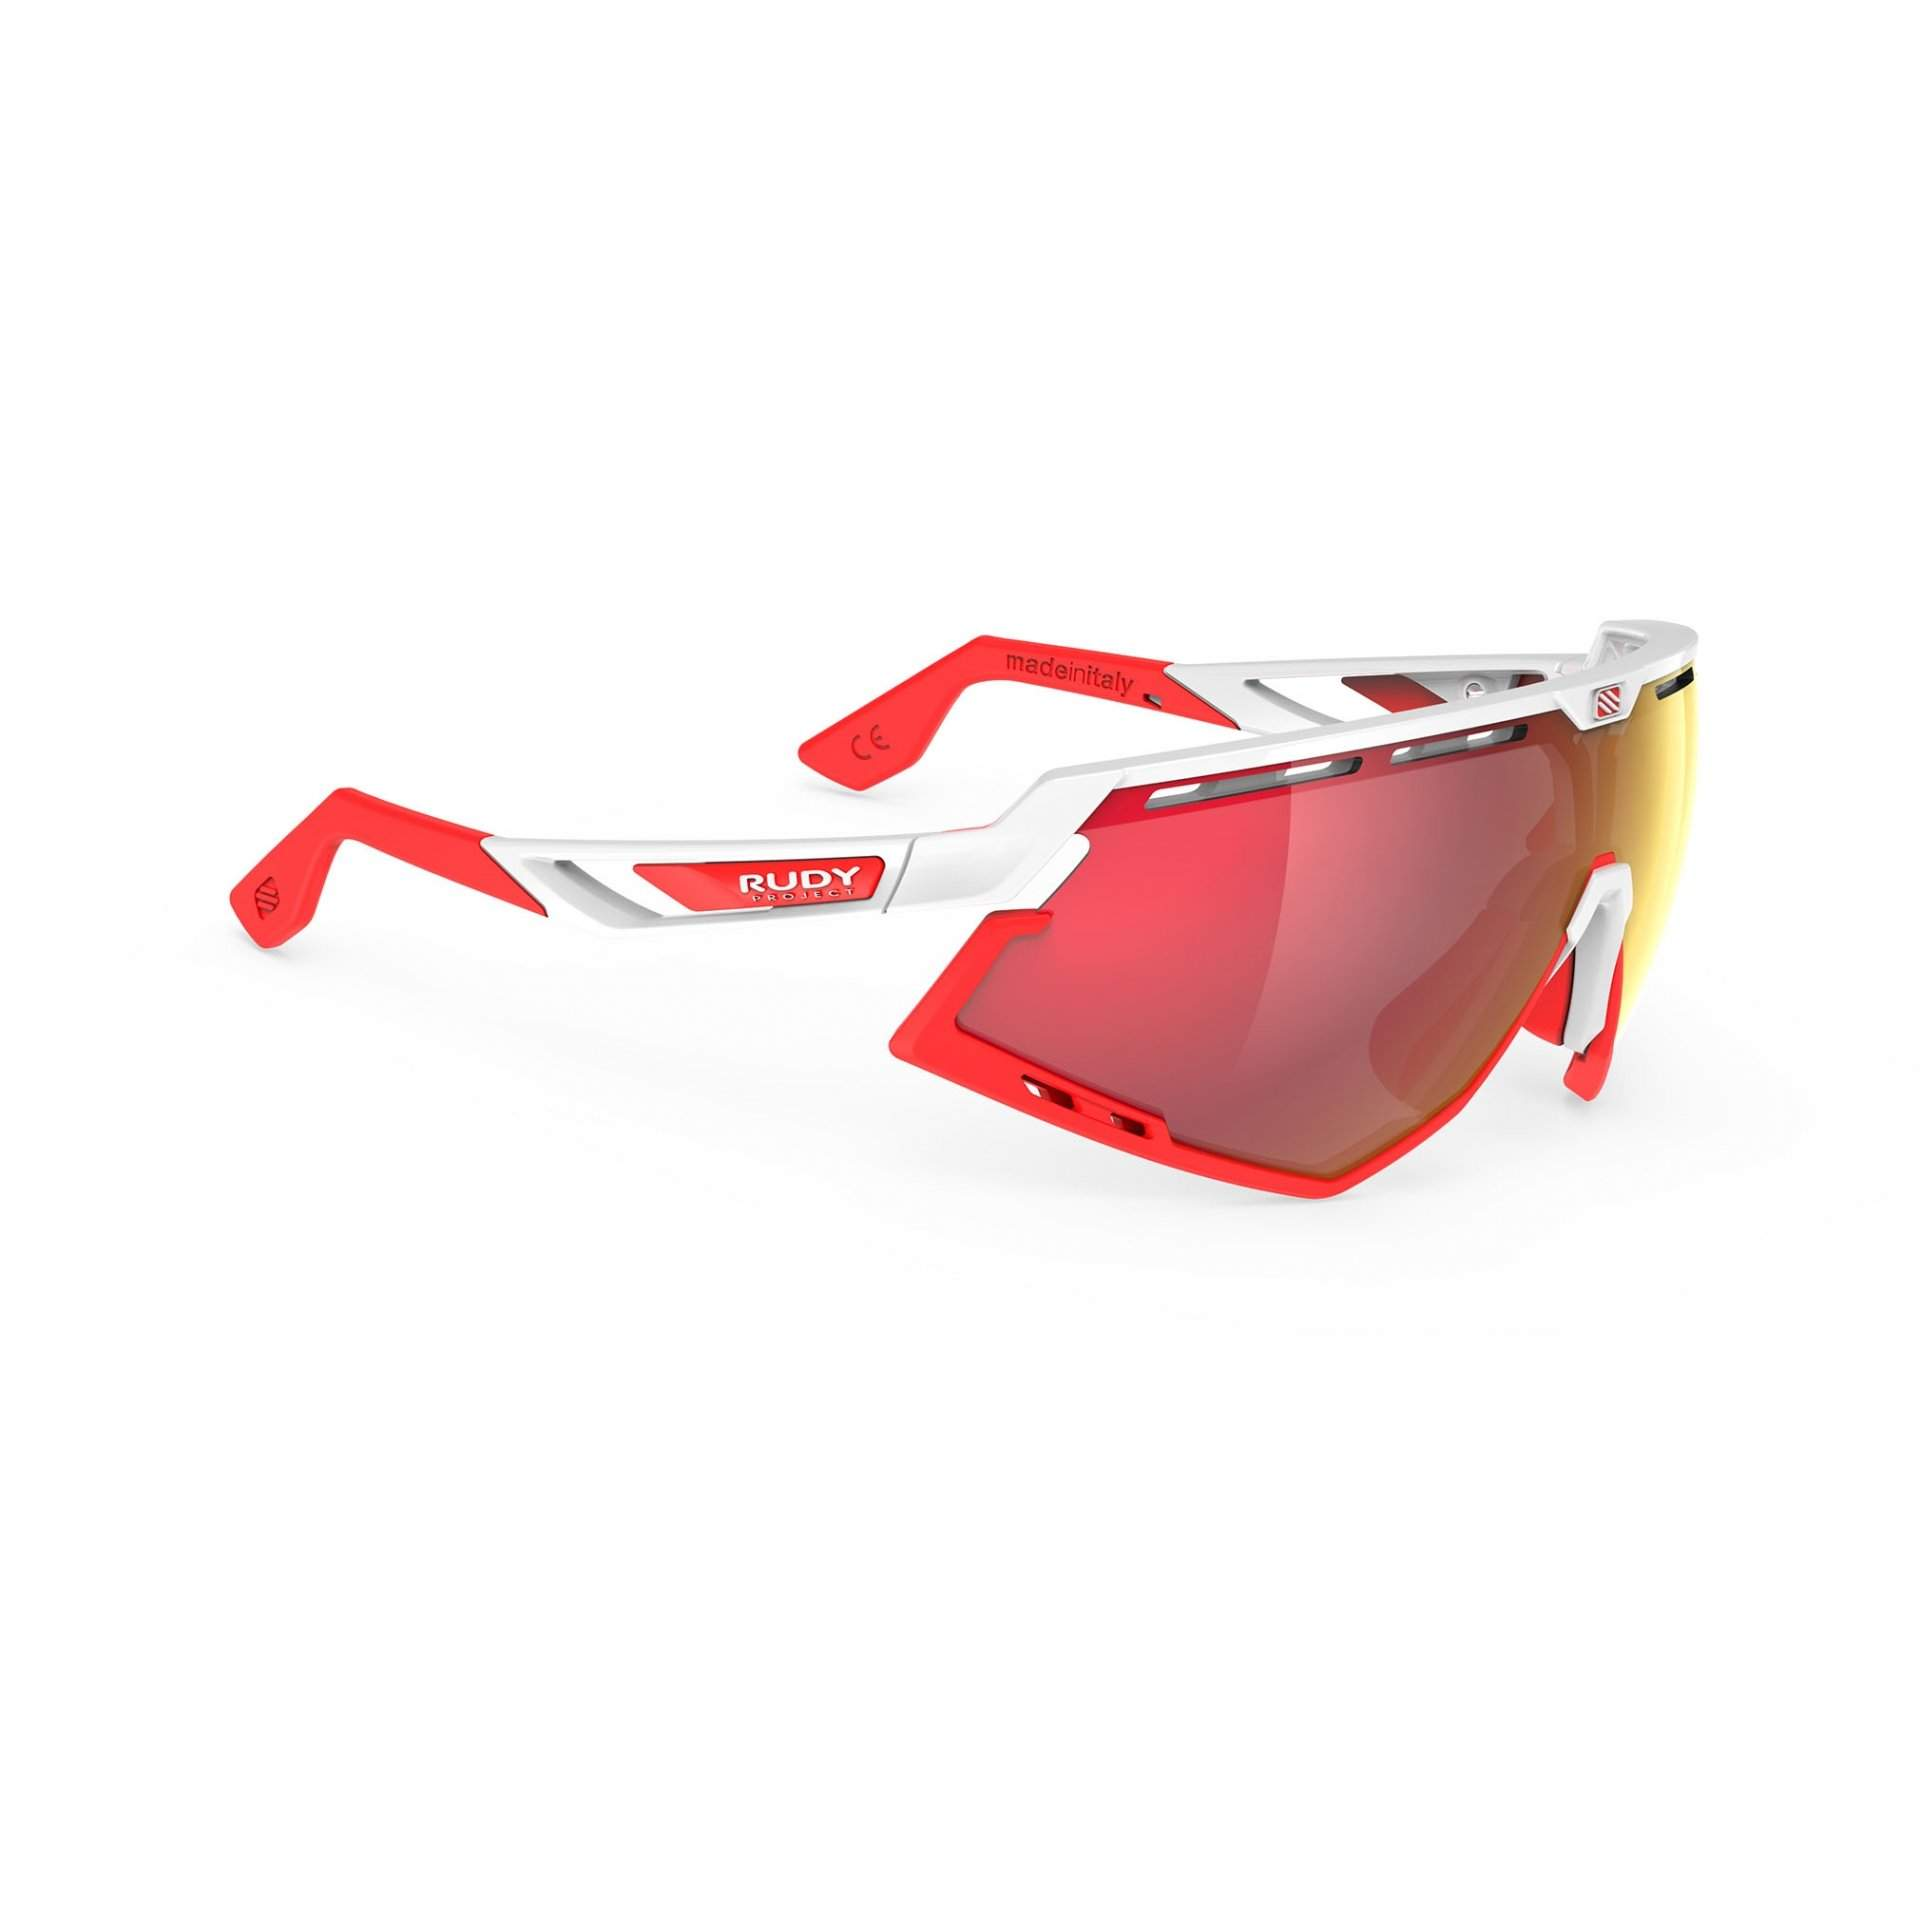 OKULARY RUDY PROJECT DEFENDER MULTILASER RED + WHITE GLOSS BUMPRES RED FLUO SP5238690000